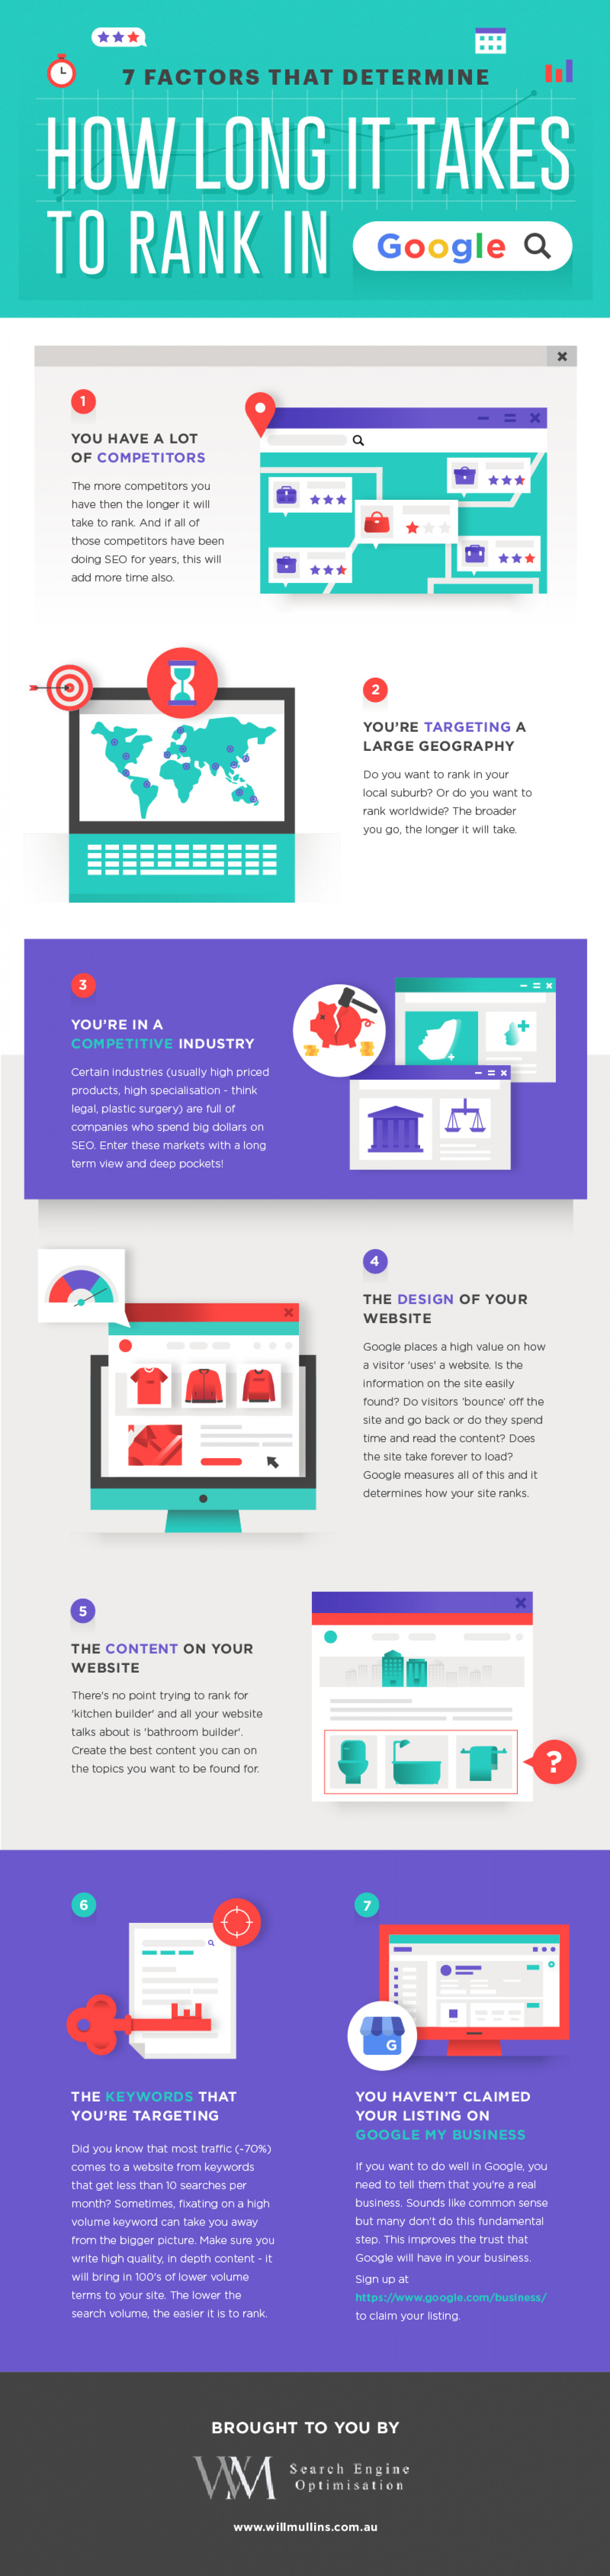 7 Factors that Determine How Long It Takes to Rank in Google Infographic